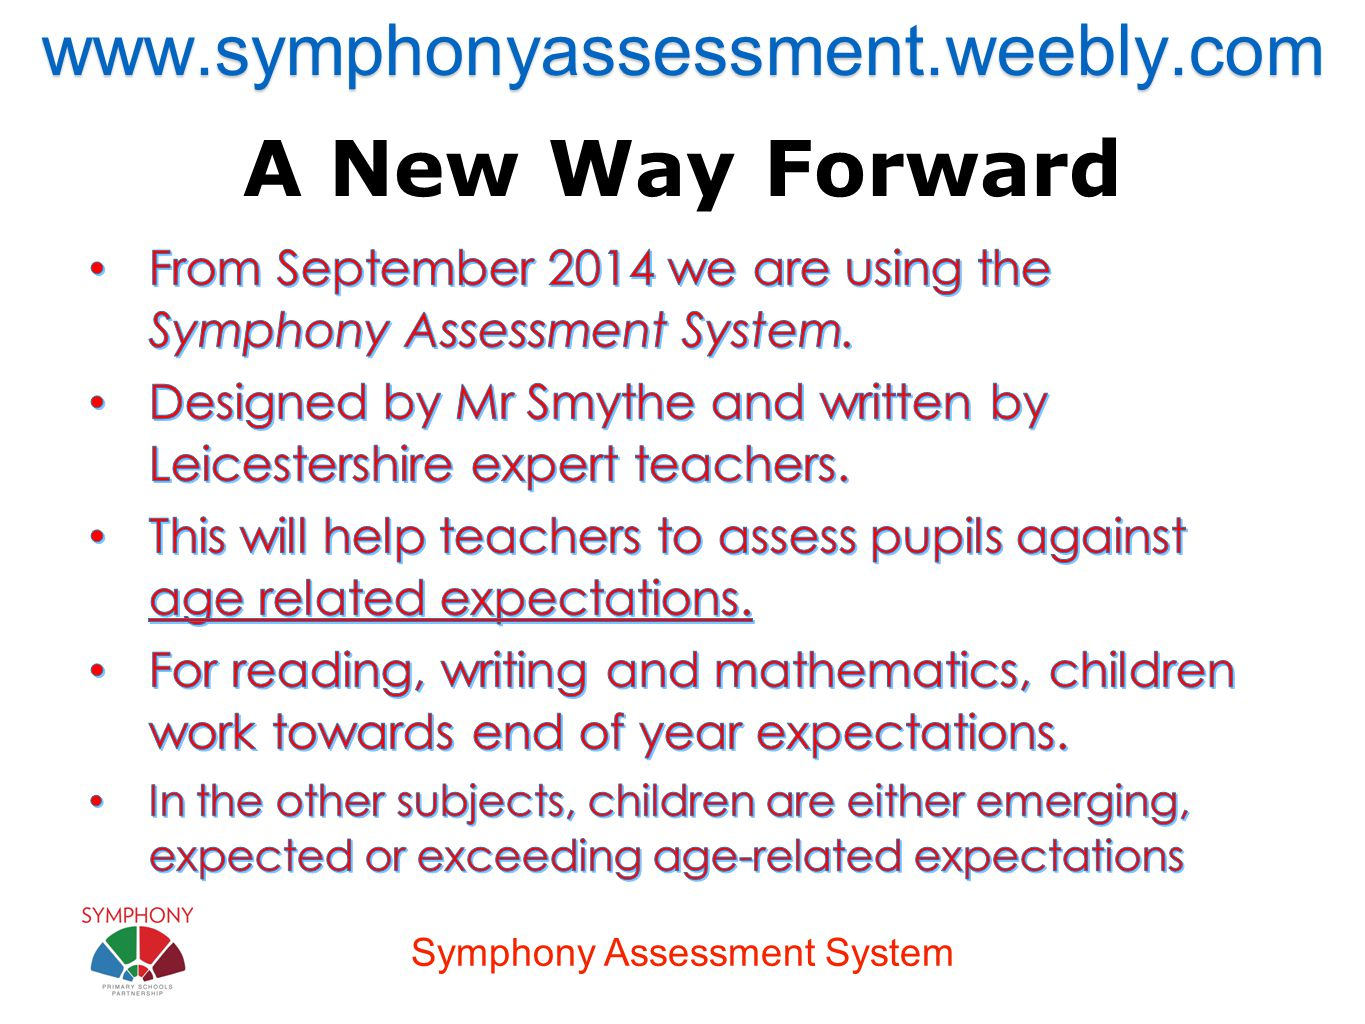 Symphony Assessment System A New Way Forwardwww.symphonyassessment.weebly.com